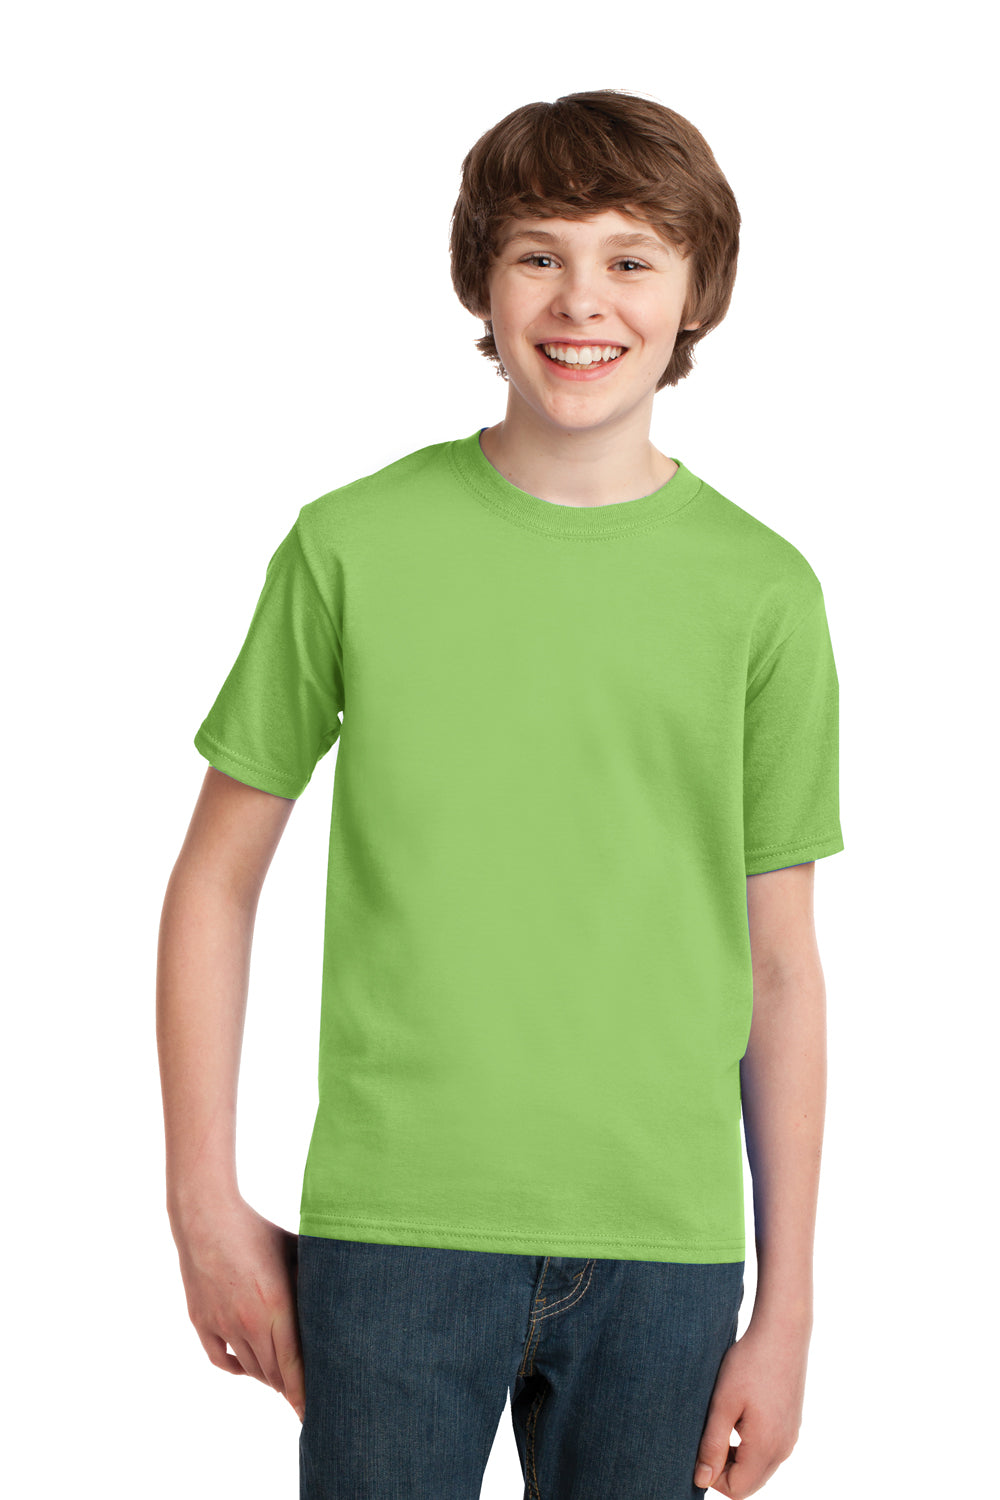 Port & Company PC61Y Youth Essential Short Sleeve Crewneck T-Shirt Lime Green Front